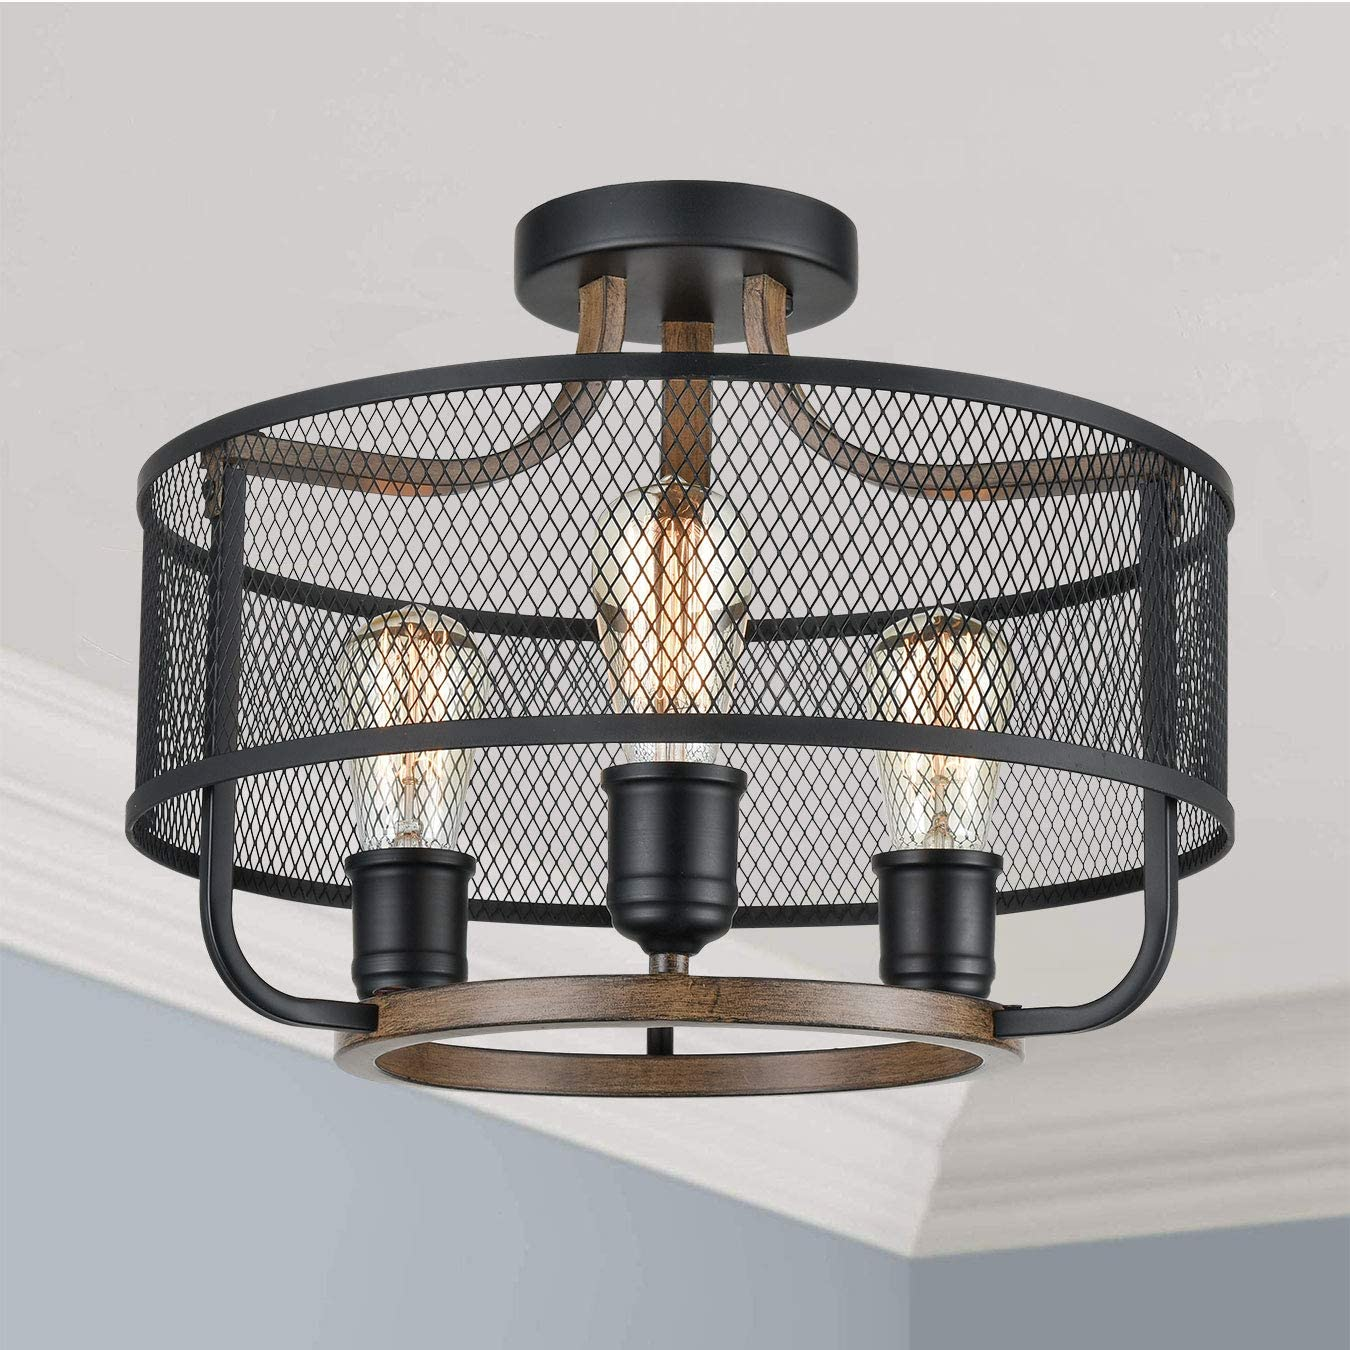 Industrial Black Semi Flush Mount Ceiling Light Metal Mesh Drum Shade with Wood Finish